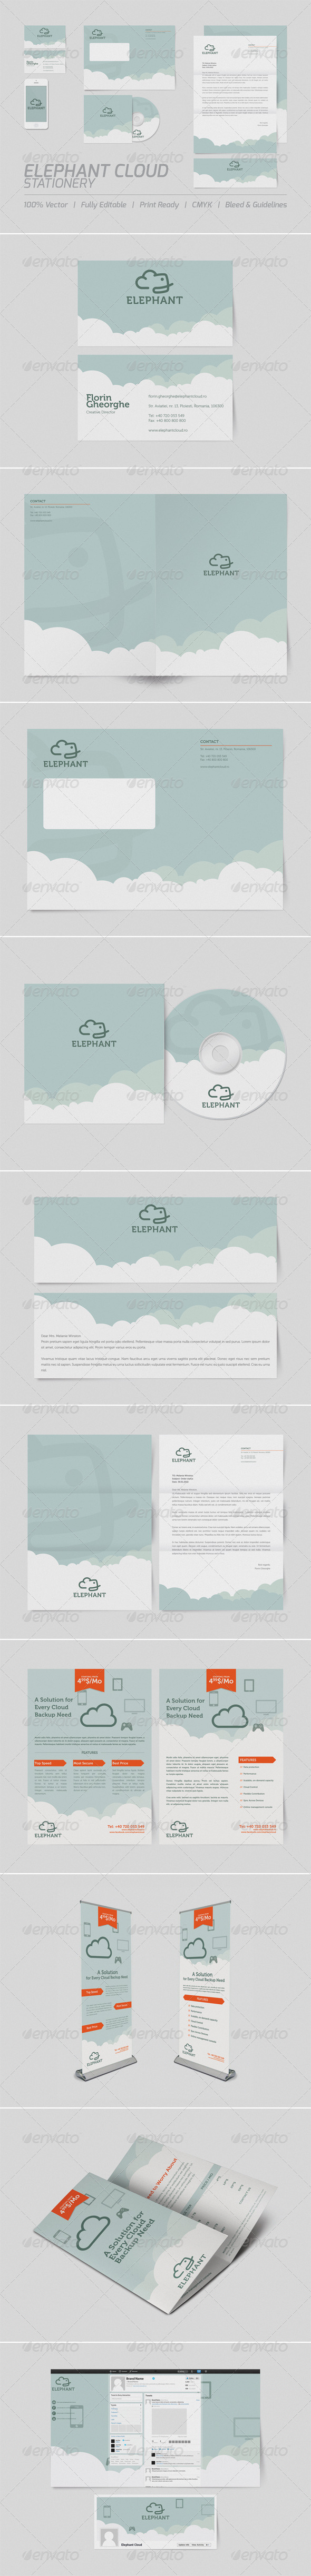 Elephant Cloud Stationery - Stationery Print Templates